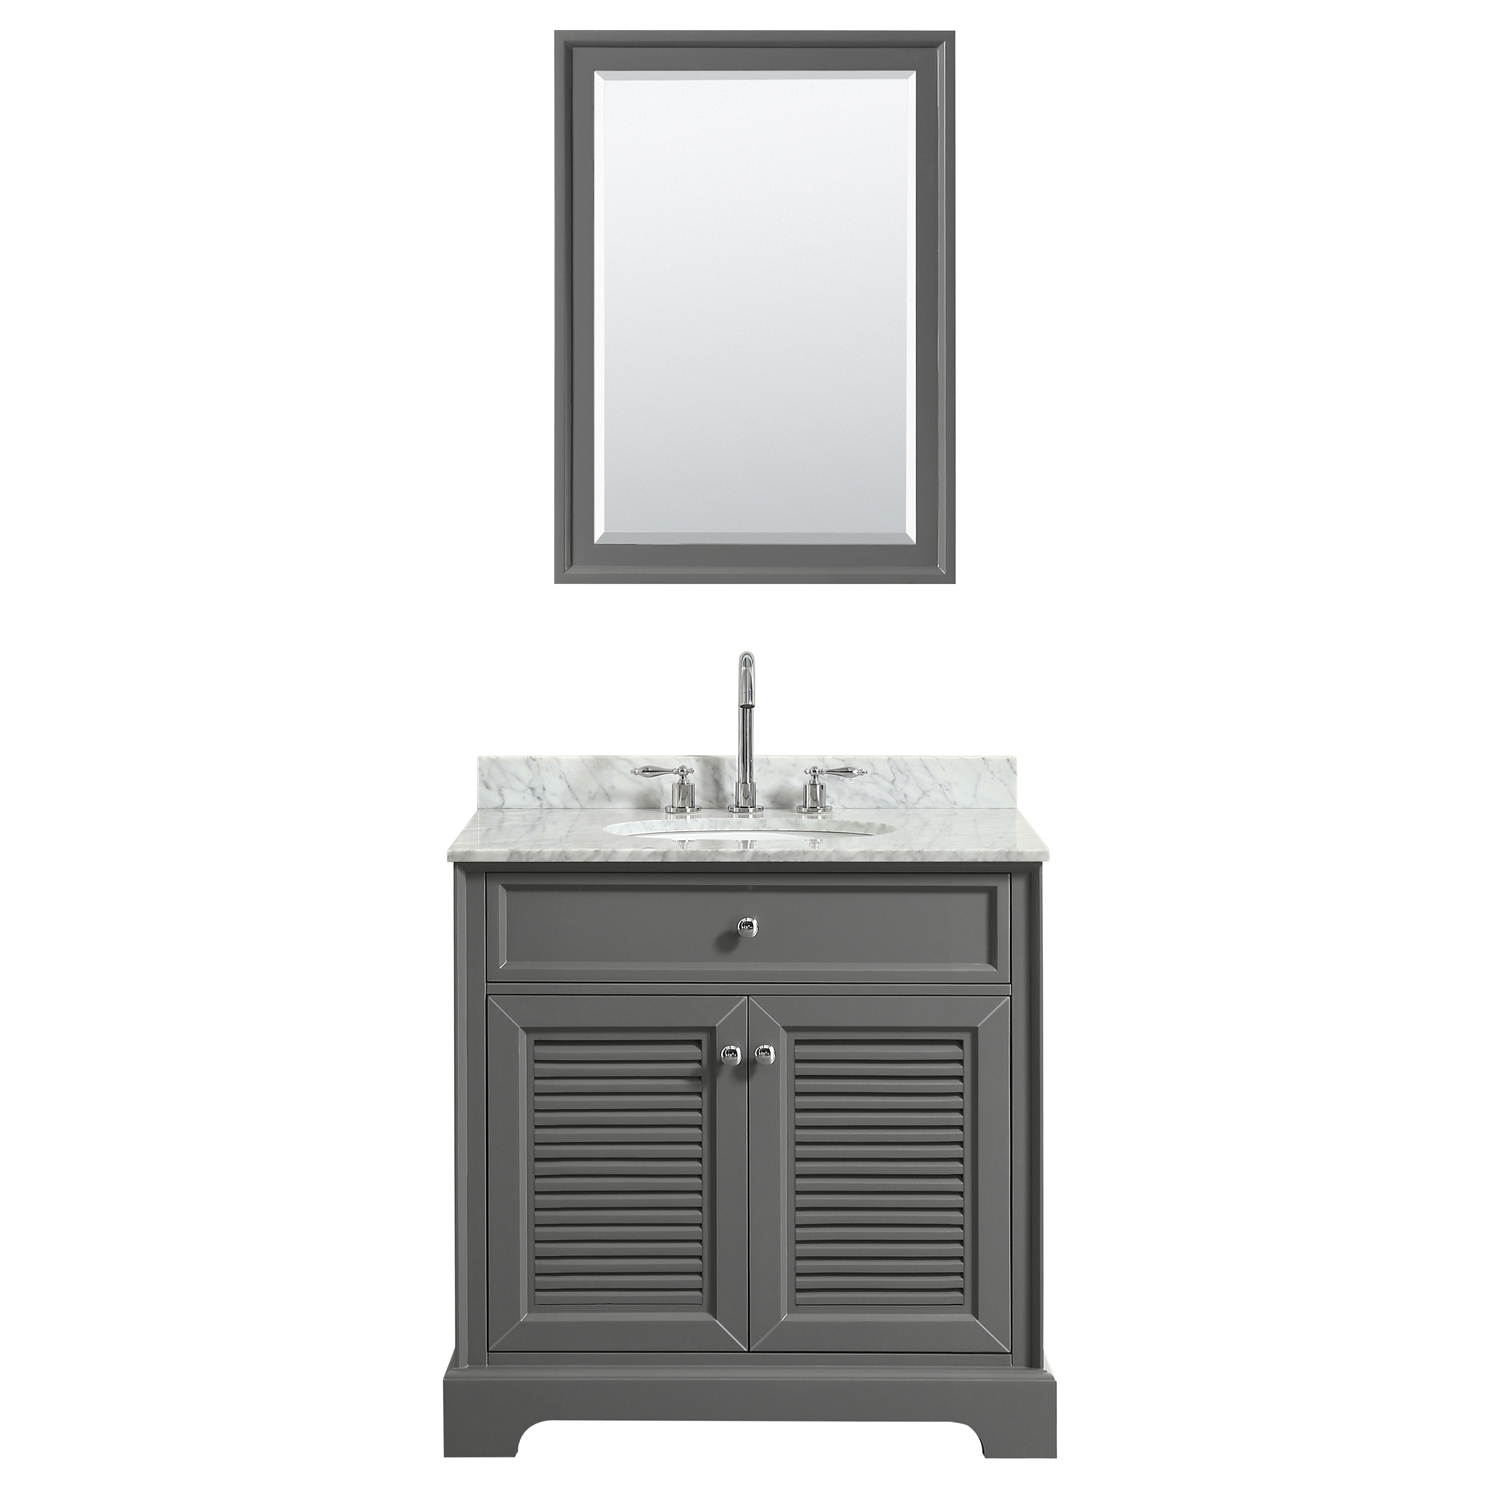 "30"" Single Bathroom Vanity in Dark Gray, White Carrara Marble Countertop, Undermount Oval Sink, and Mirror Options"